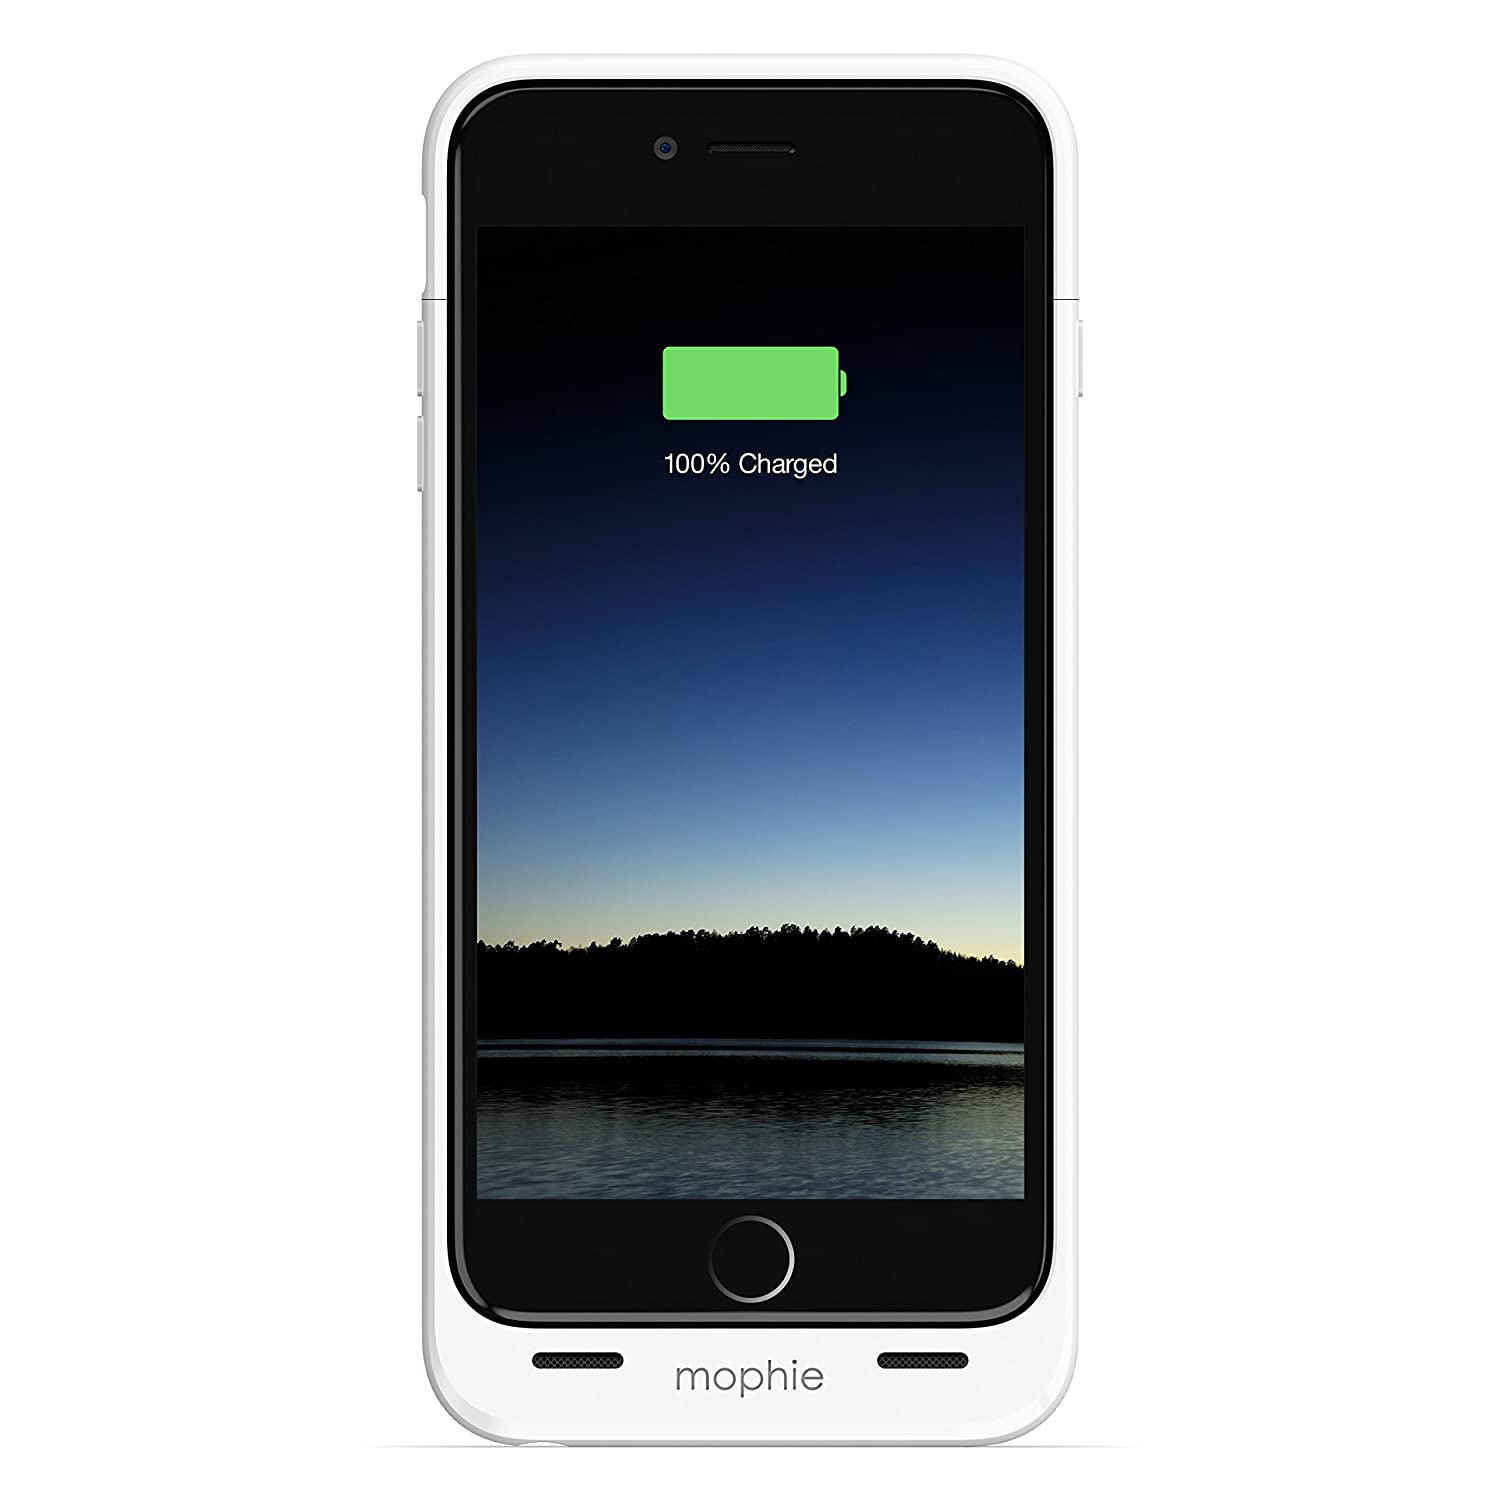 buy popular 09ccf 72450 mophie juice pack - Protective Battery Case for iPhone 6 Plus/6s Plus ONLY  (2,600mAh) - White